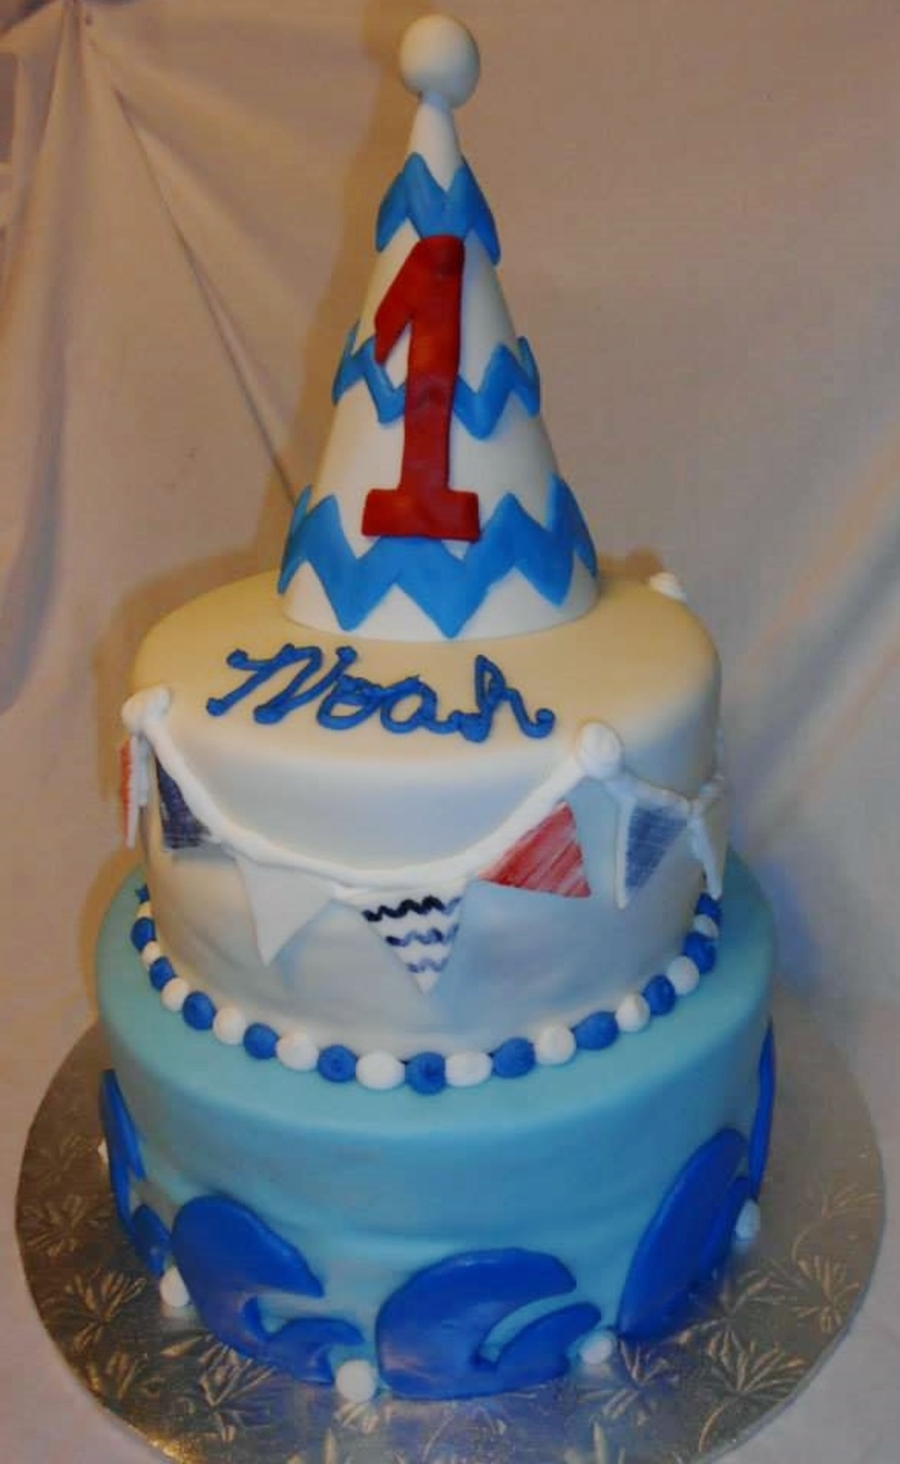 Babys First Birthday White Cake Covered In Vanilla Buttercream Home Made Marshmallow Fondant With